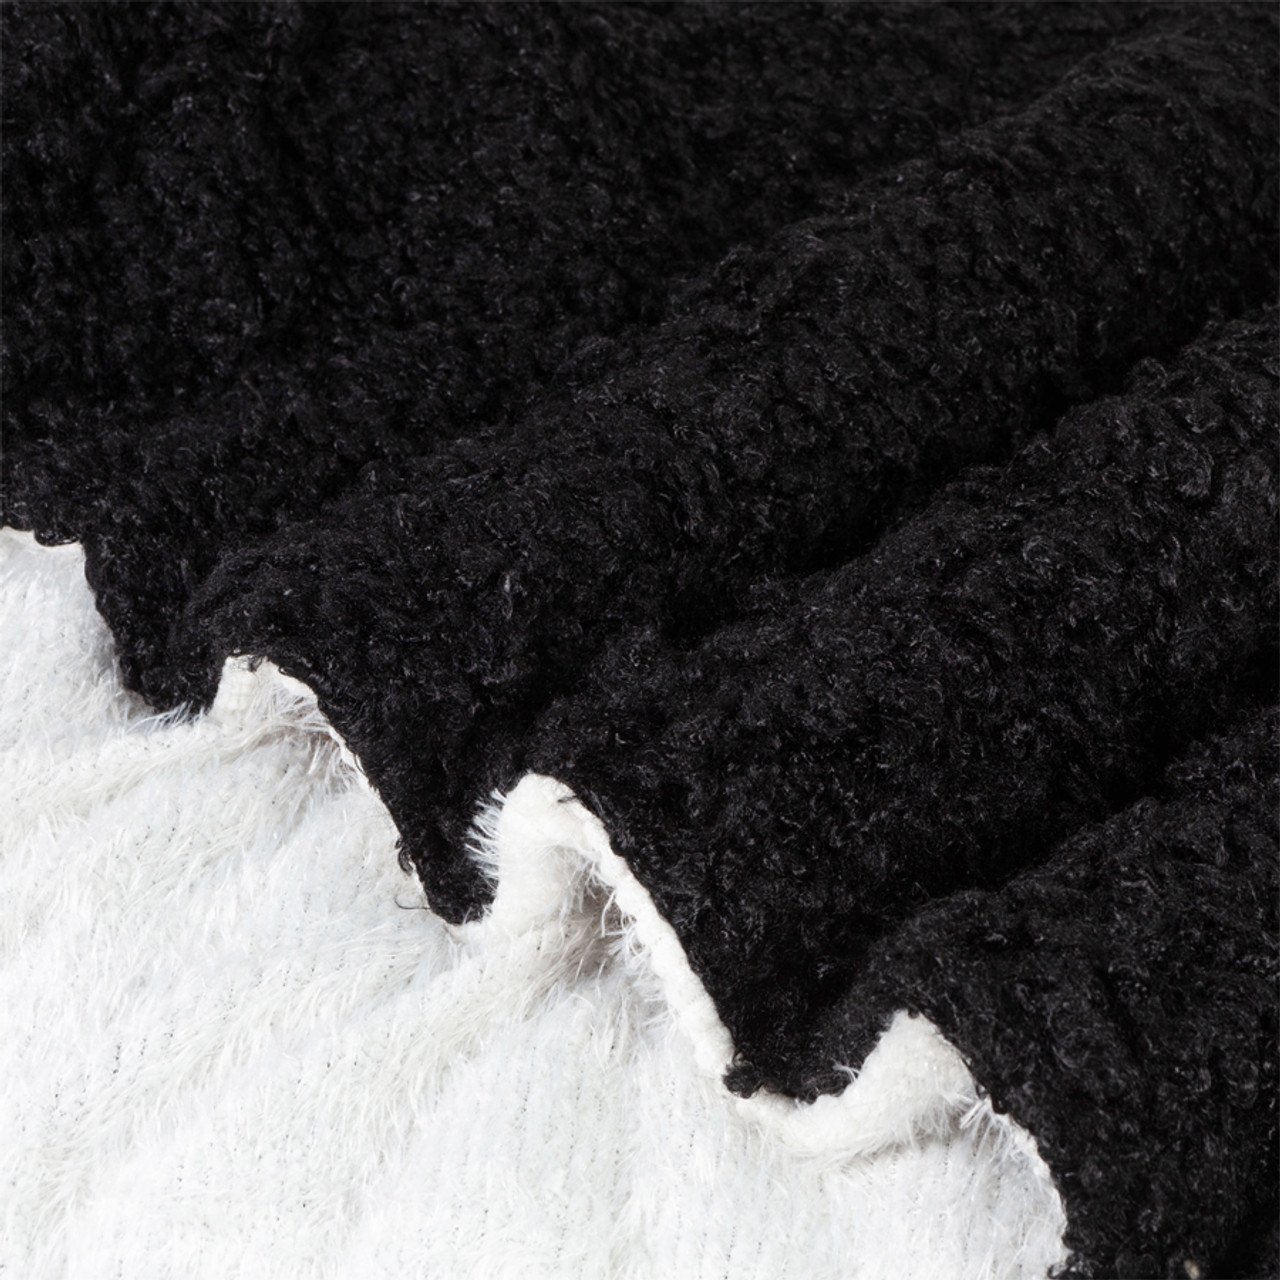 """Luxury Curly Faux Lamb Fur Ultra Plush and Soft Sherpa Fleece Decorative Throw Blanket, Black or Lilac Color 46"""" x 60"""""""